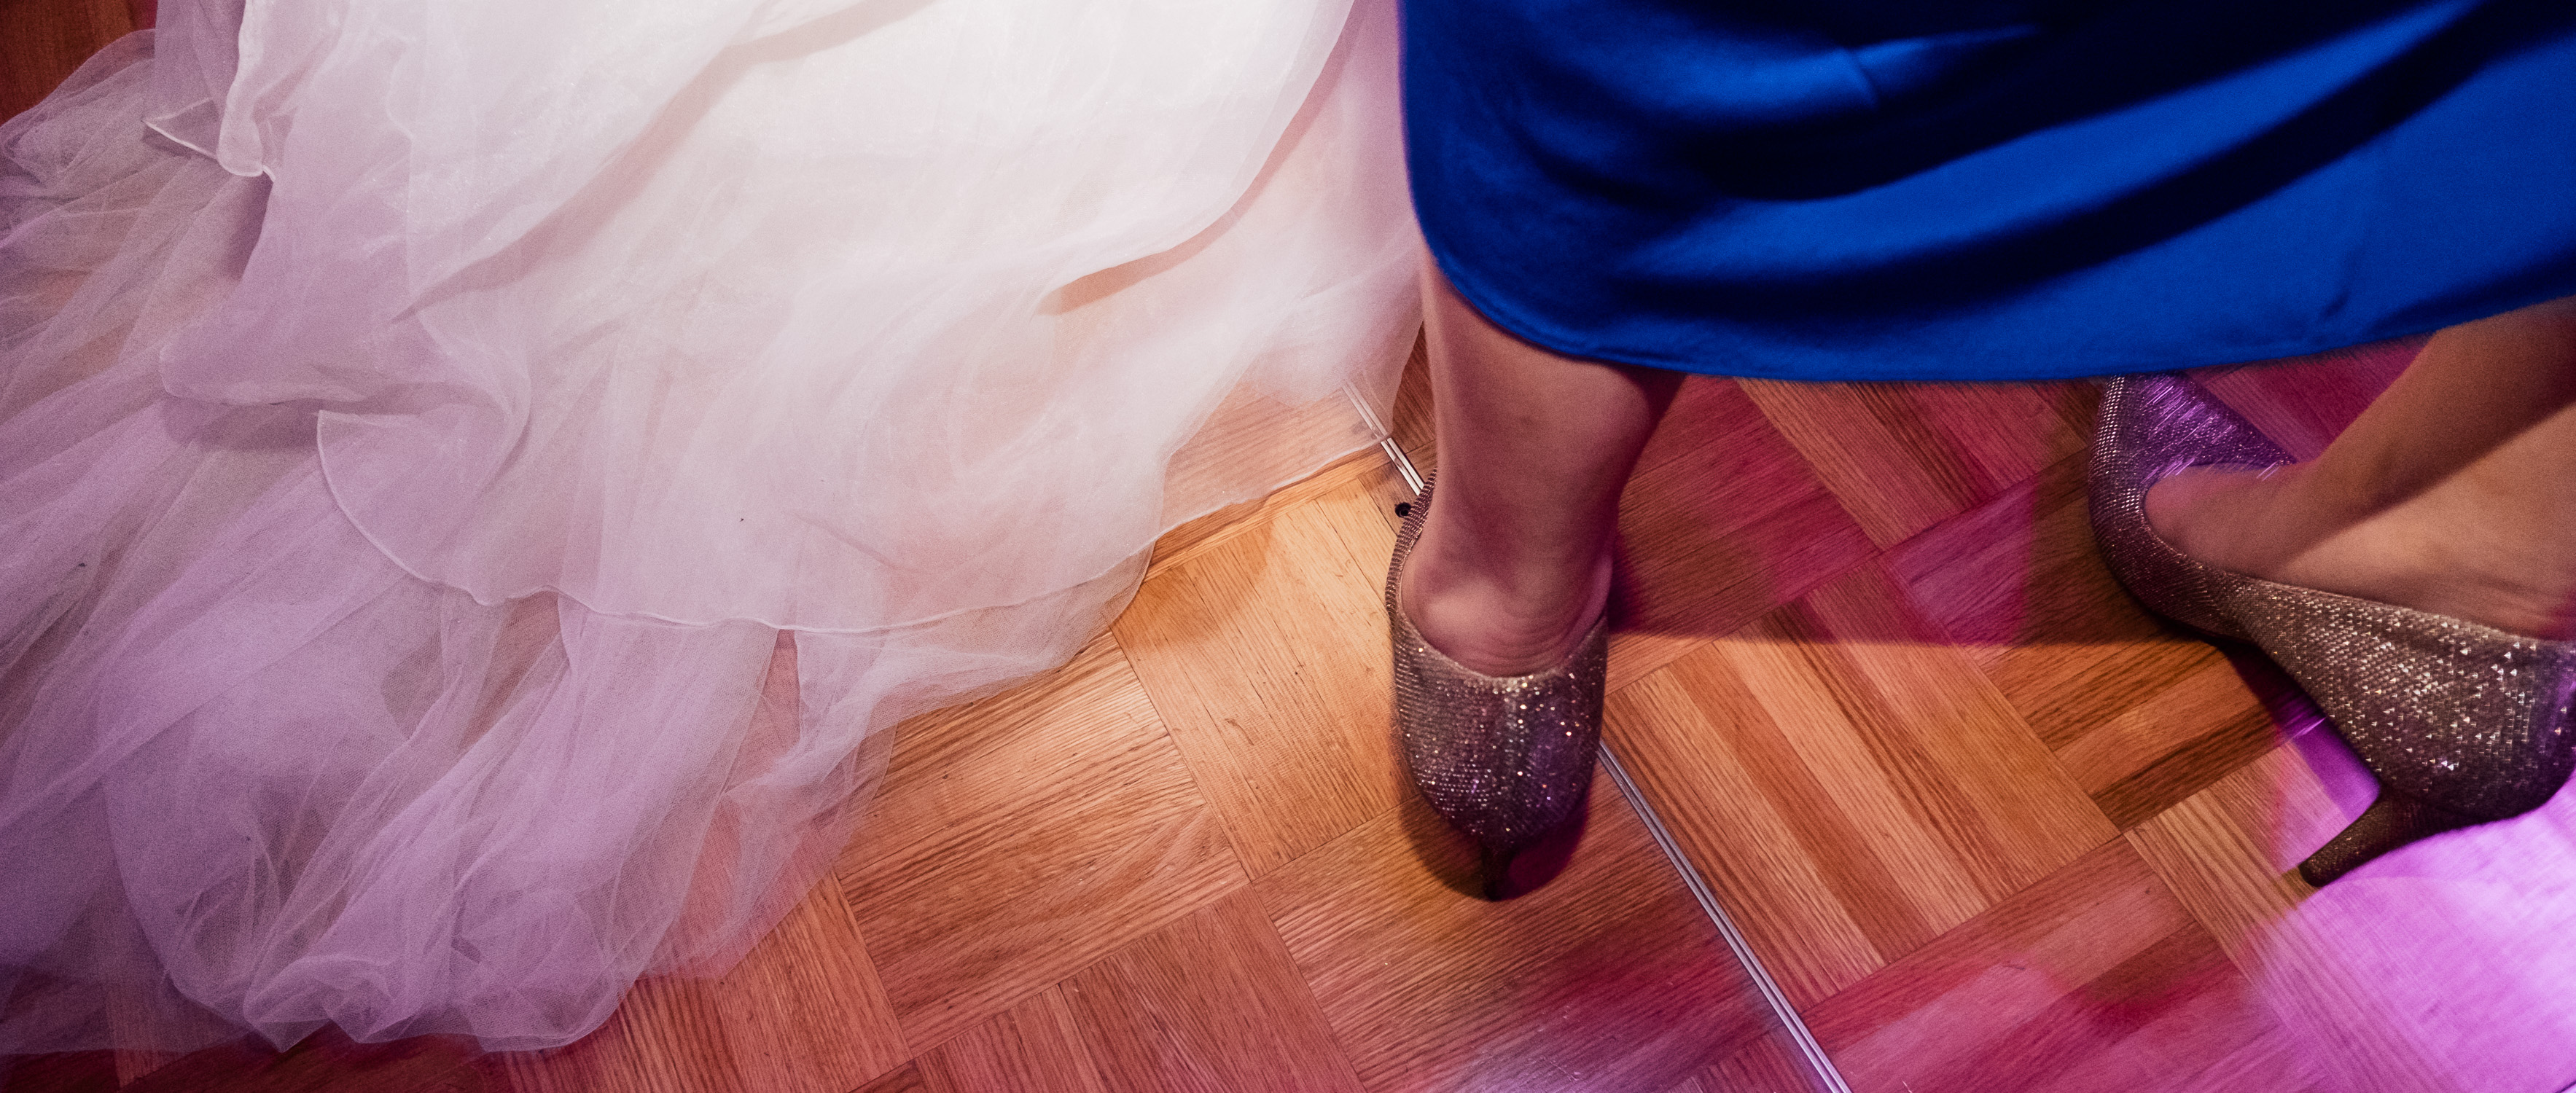 Lynsey and Kai's Melbourne wedding - dancing and glittery shoes at wedding reception at the Marriott Hotel